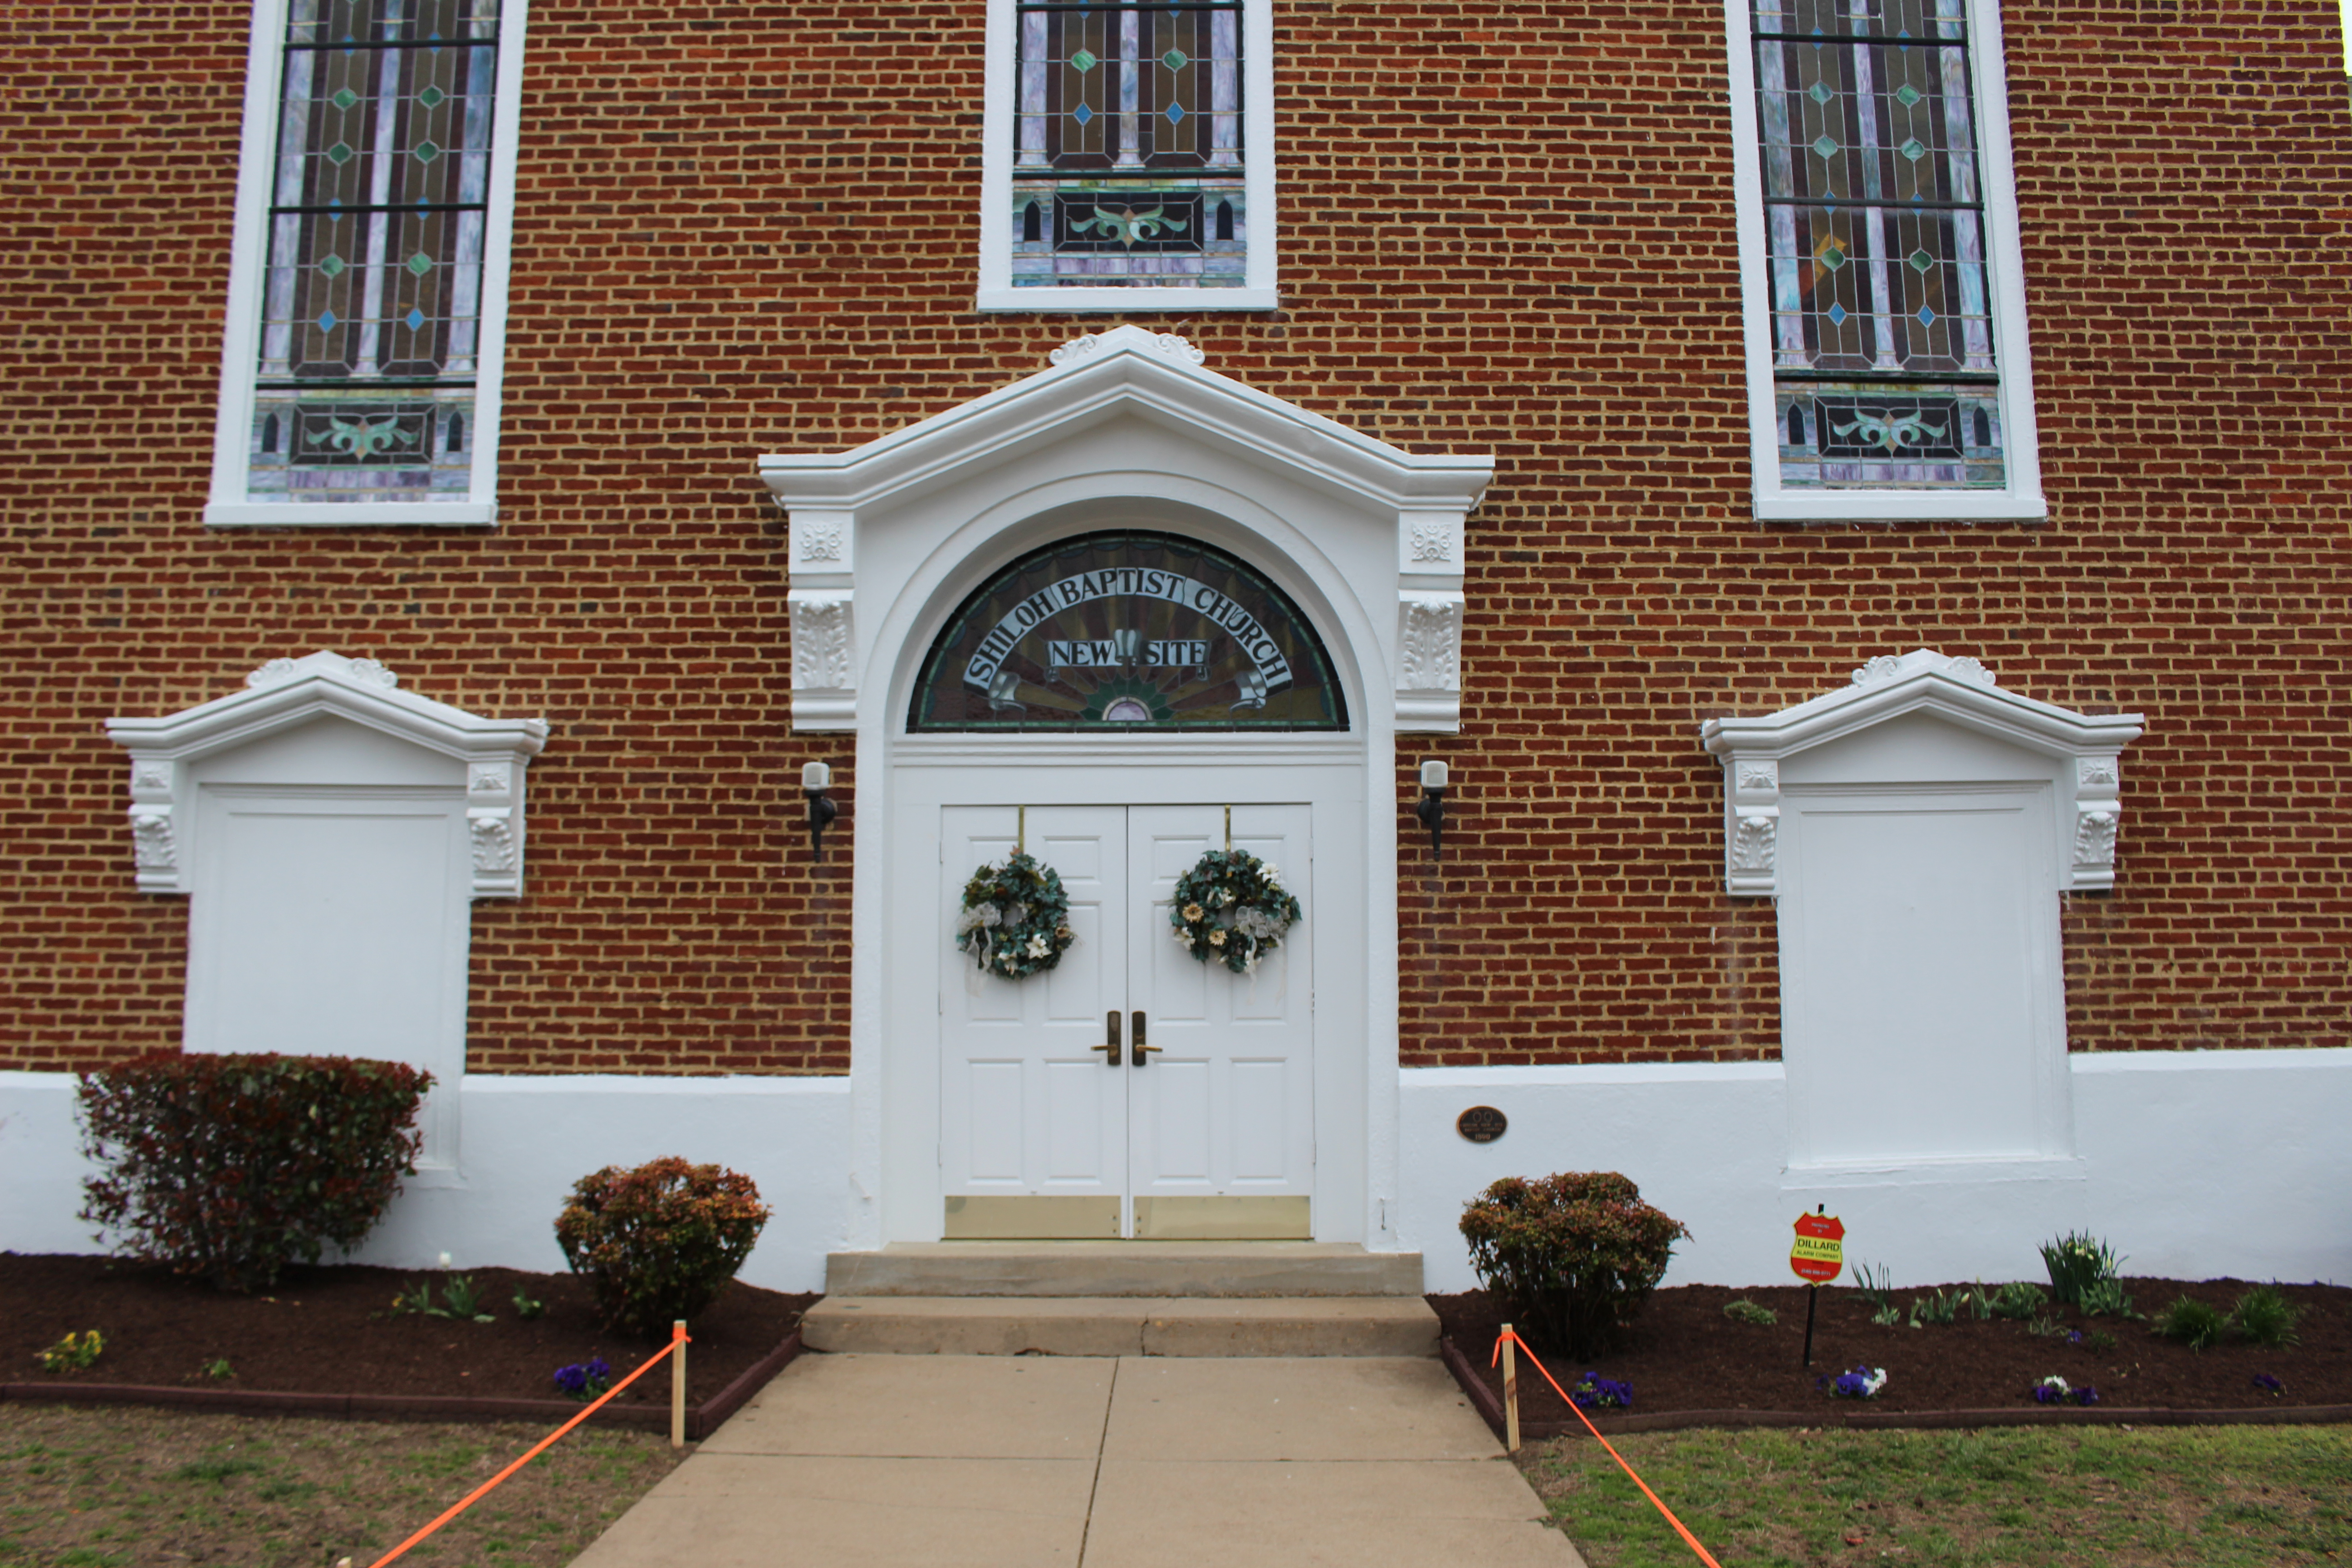 Pictured here is Shiloh Church, New Site